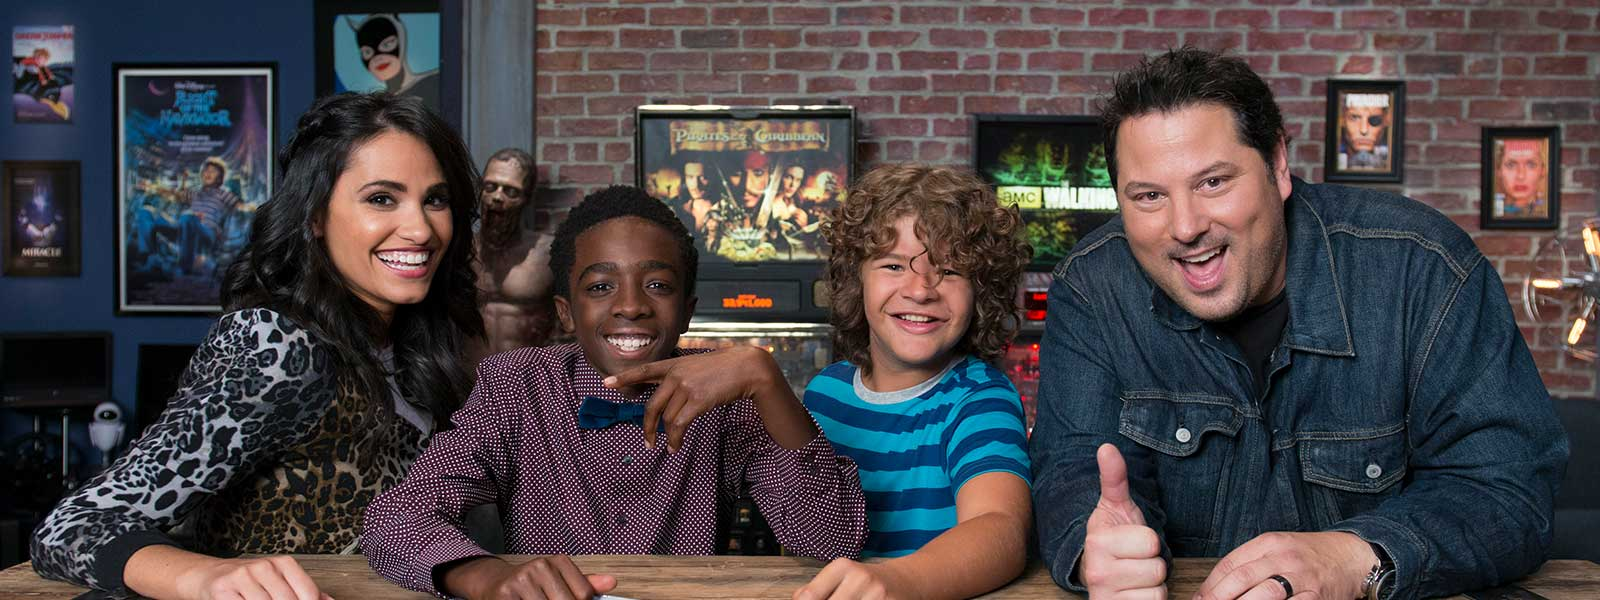 geeking-out-107-tiffany-smith-caleb-mclaughlin-gaten-matarazzo-greg-grunberg-post-800×600